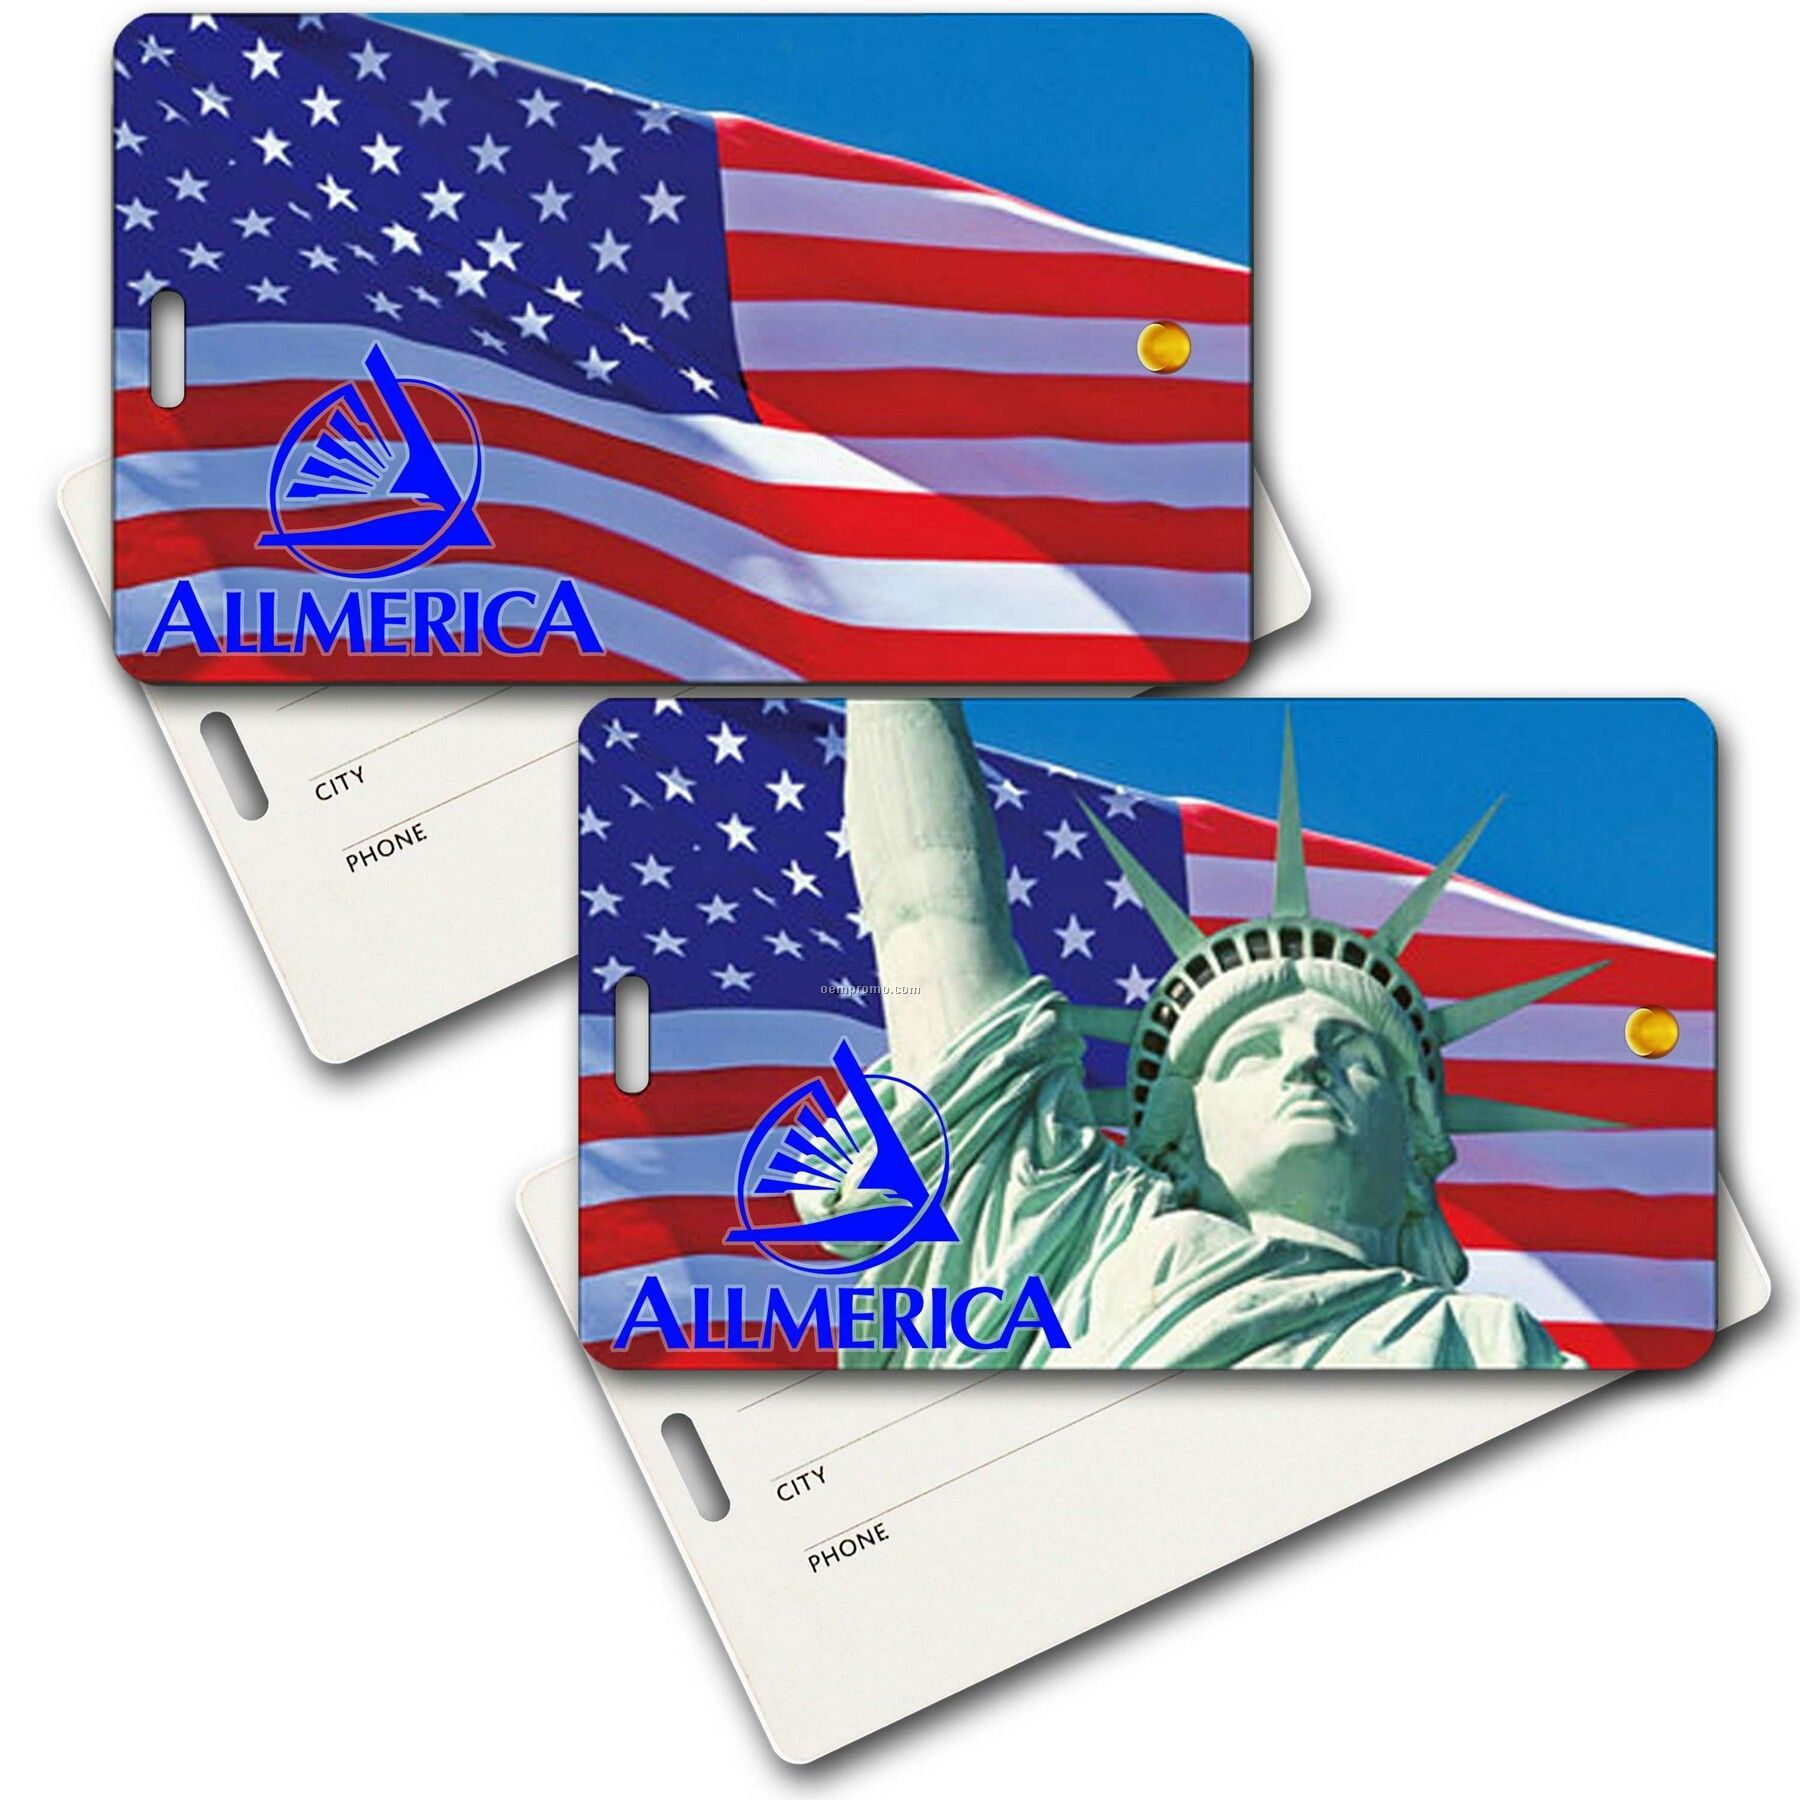 Privacy Tag W/3d Lenticular Images Of Lady Liberty And Us Flag (Imprint)